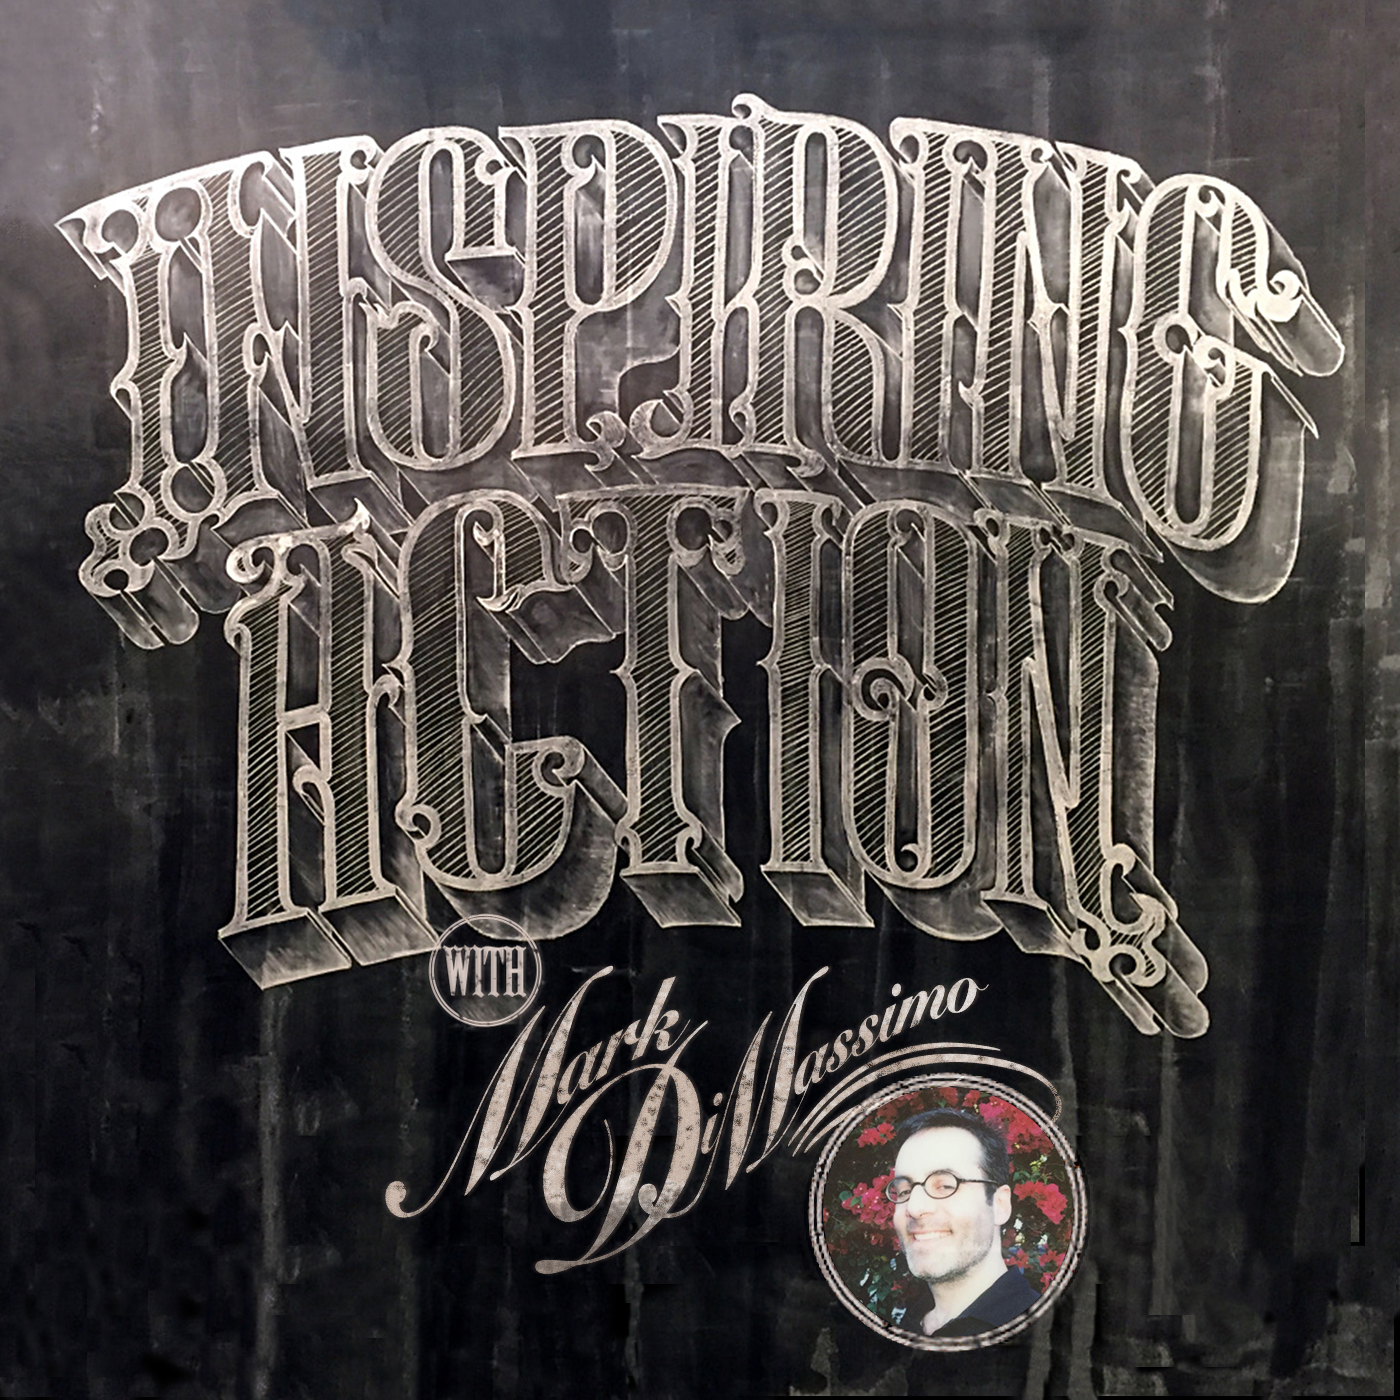 Inspiring Action with Mark DiMassimo